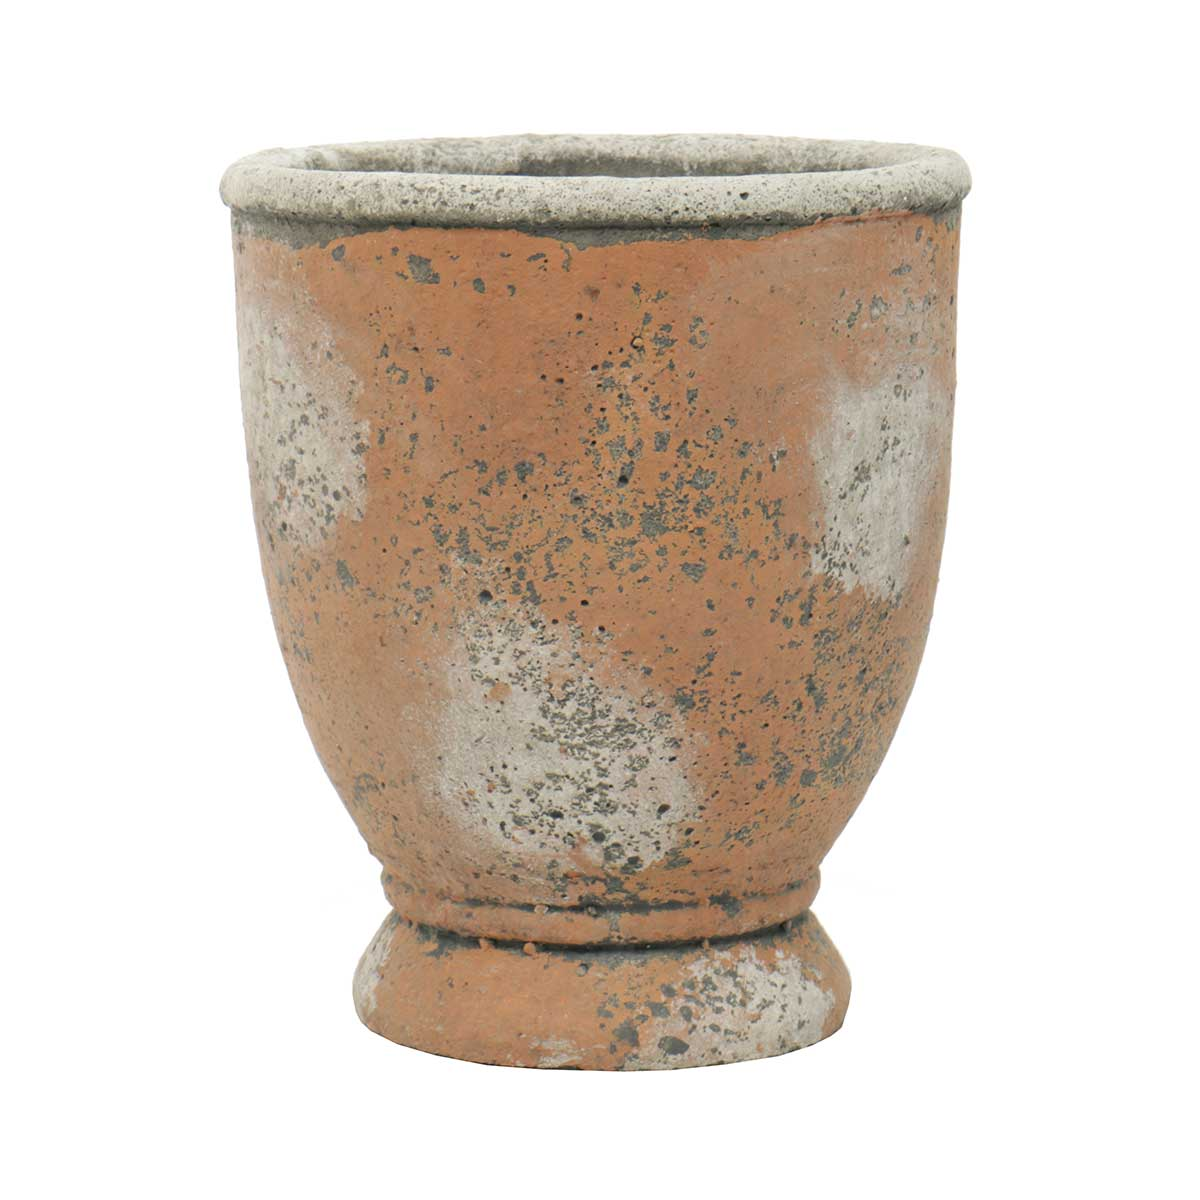 "VASE 5.5""X7"" CONCRETE - Click Image to Close"